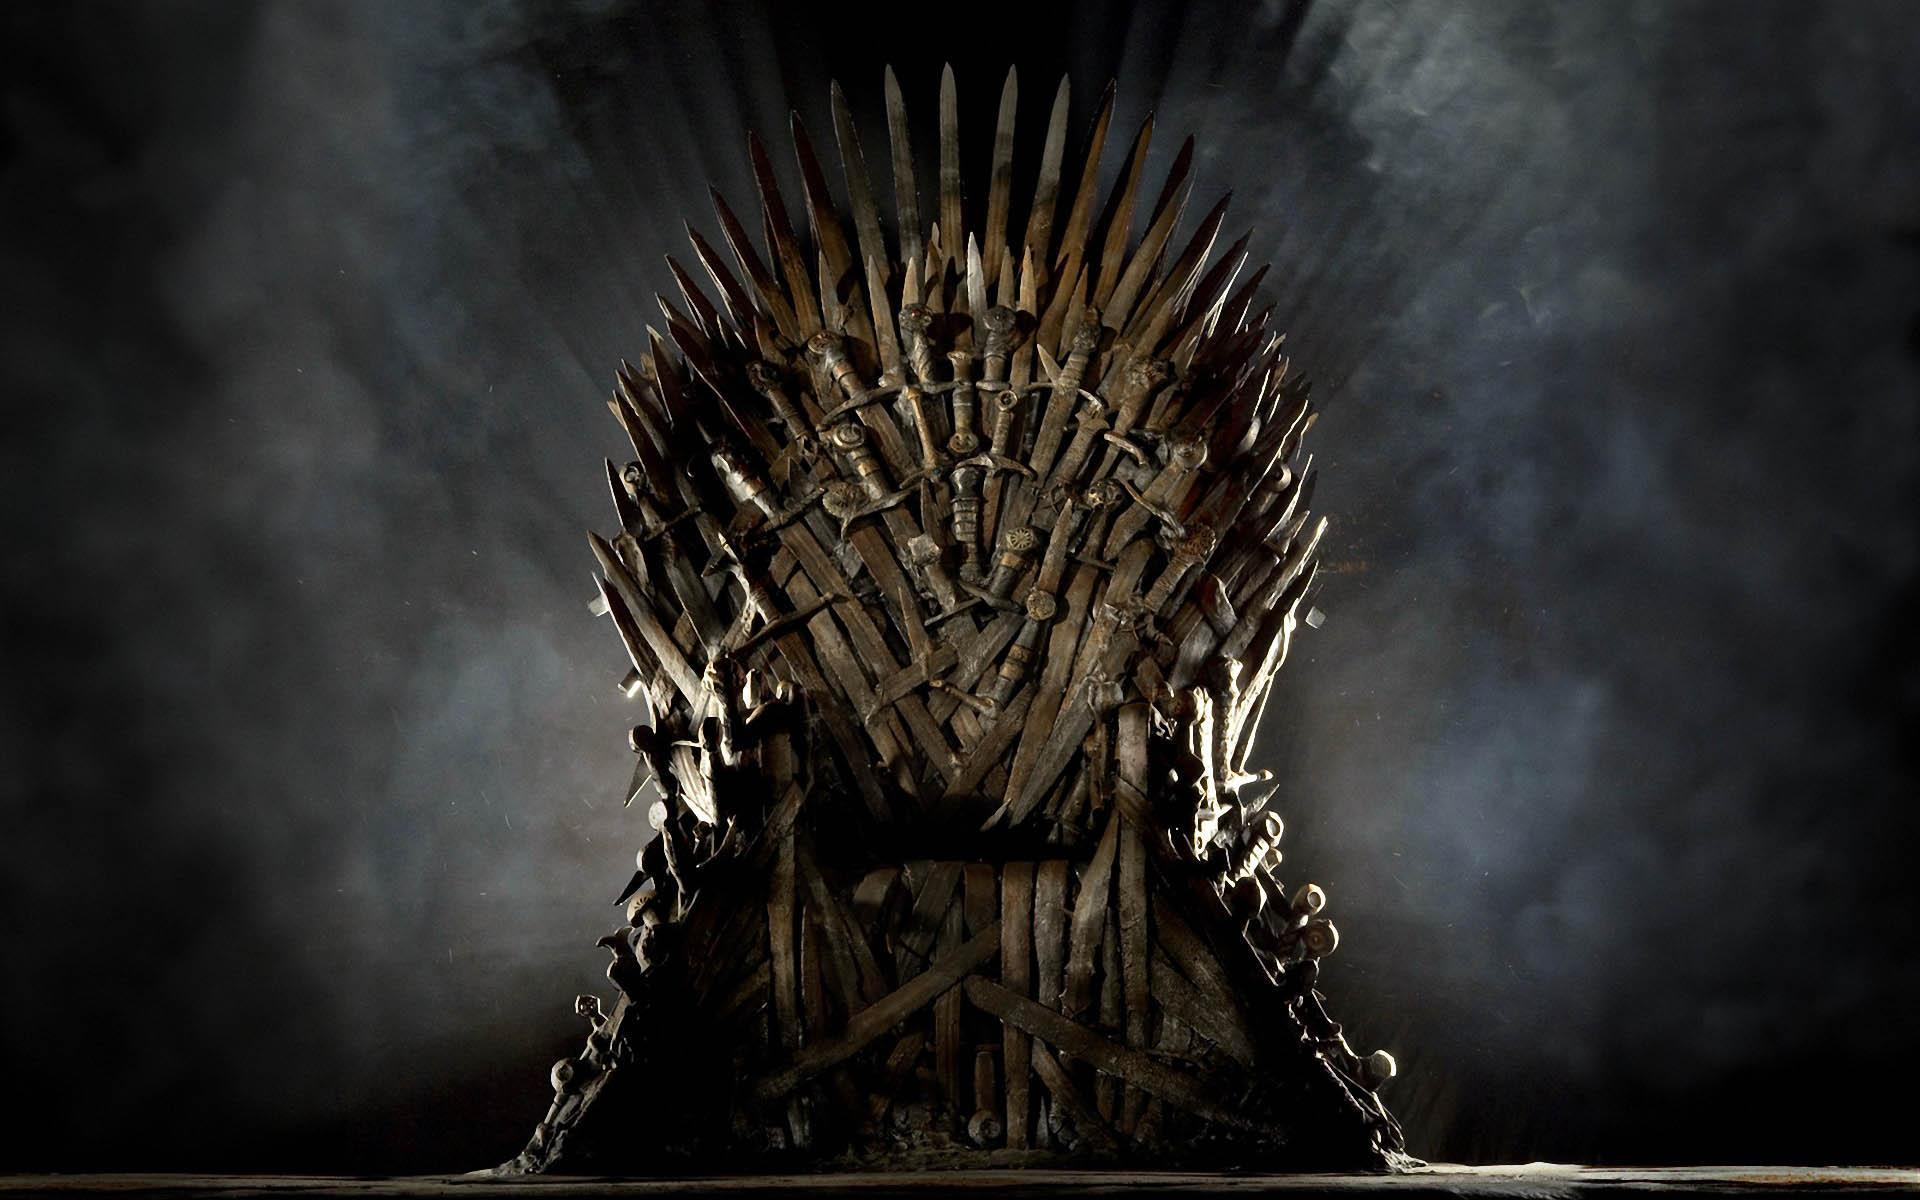 Game of thrones! Books or TV show?